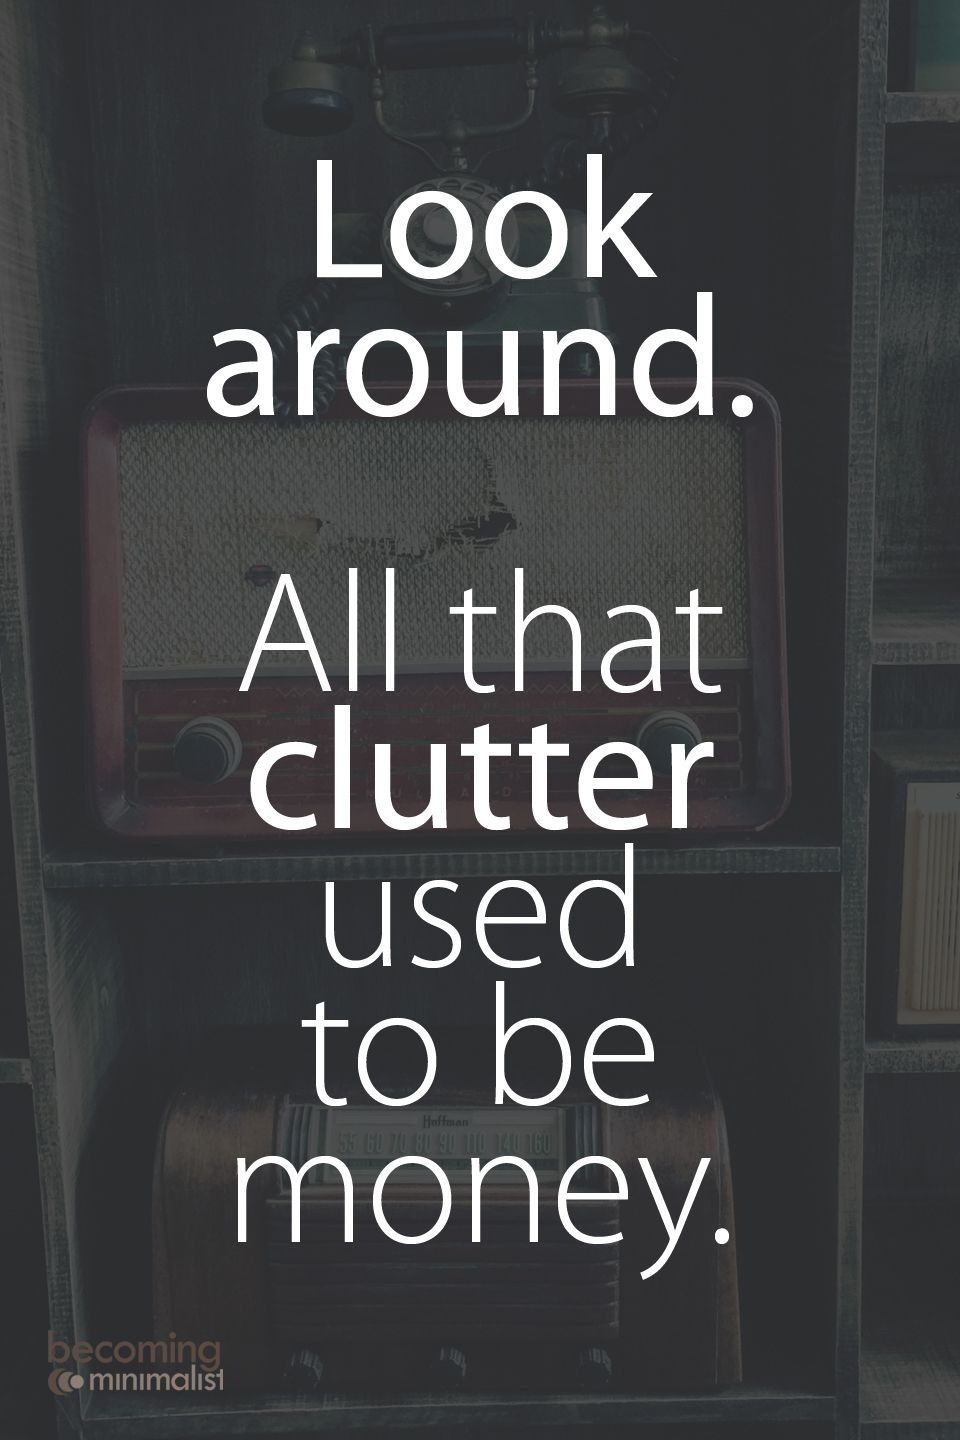 Pin by Joshua Becker on Becoming Minimalist | Inspirational quotes ...